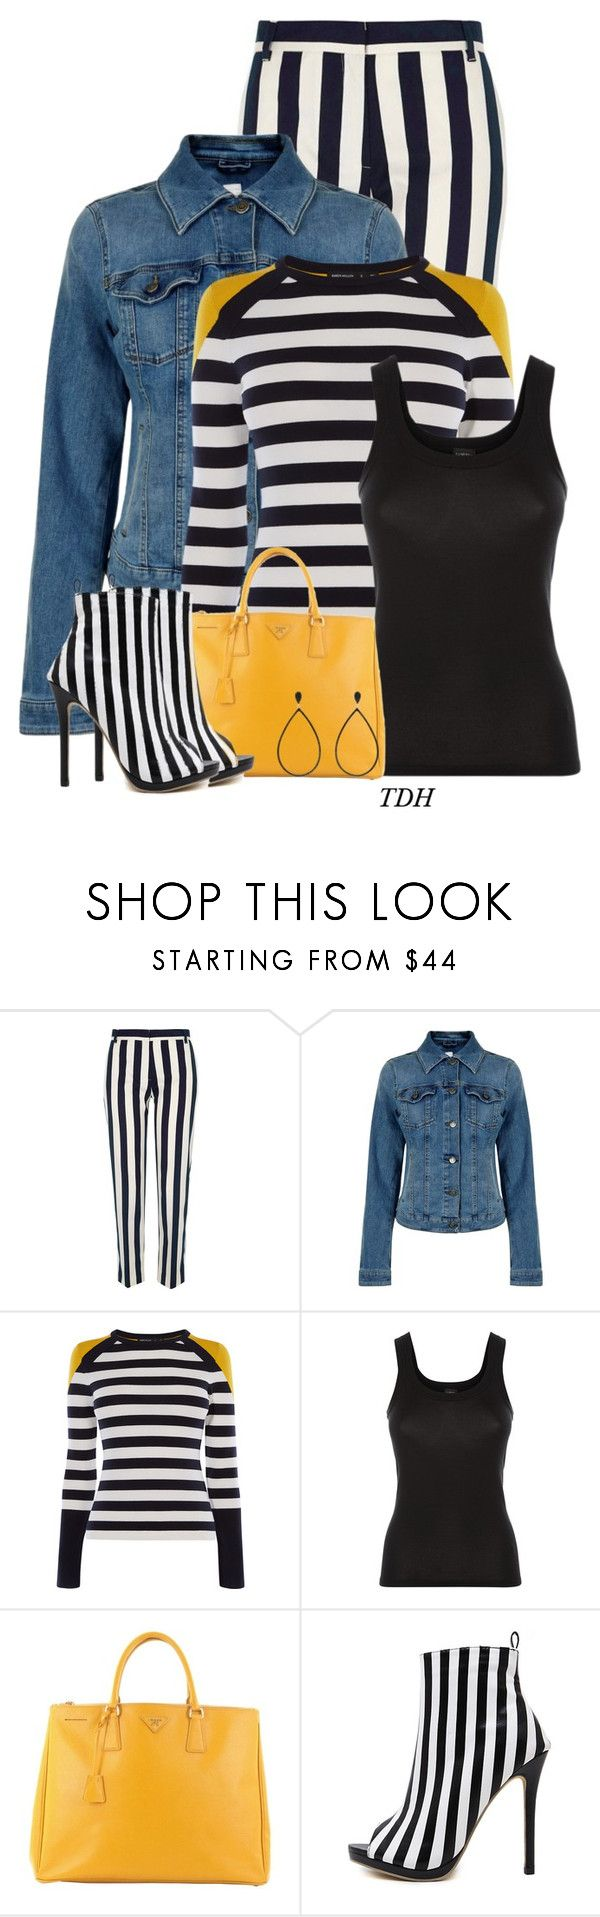 """Stripes on Stripes"" by talvadh ❤ liked on Polyvore featuring River Island, BOSS Orange, Karen Millen, La Perla, Prada, WithChic and Effy Jewelry"